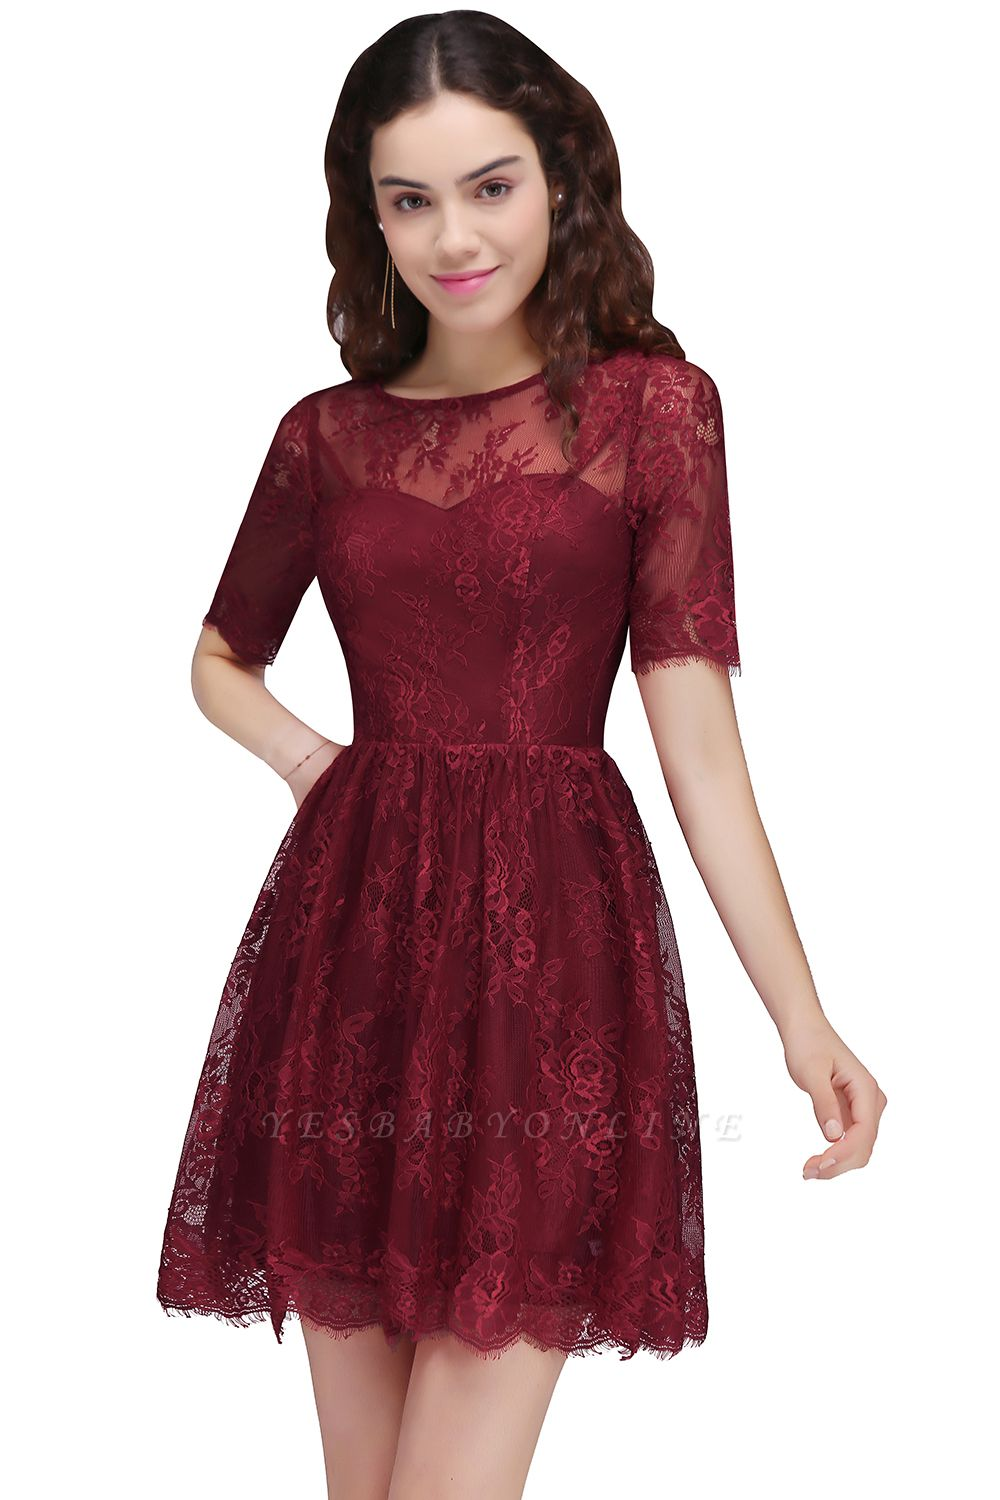 Cheap A-Line Round Neck Short Lace Burgundy Homecoming Dress in Stock